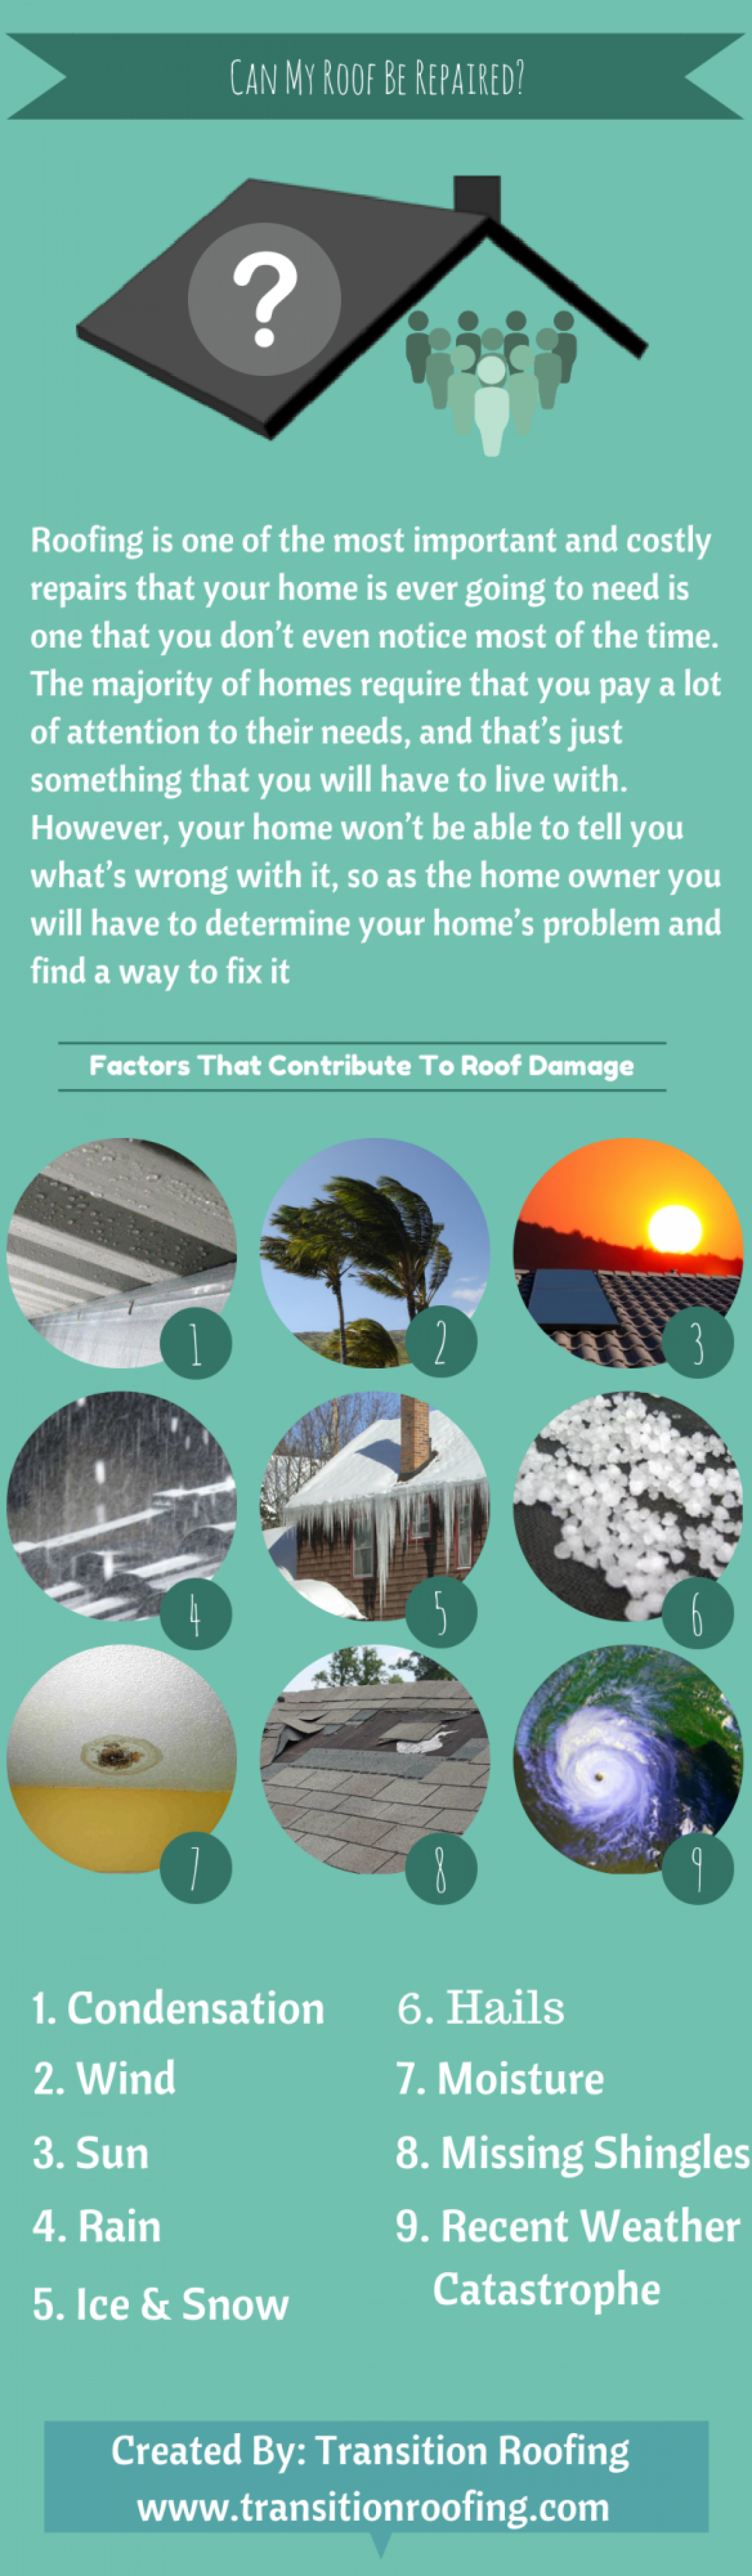 Can My Roof Be Repaired? Infographic